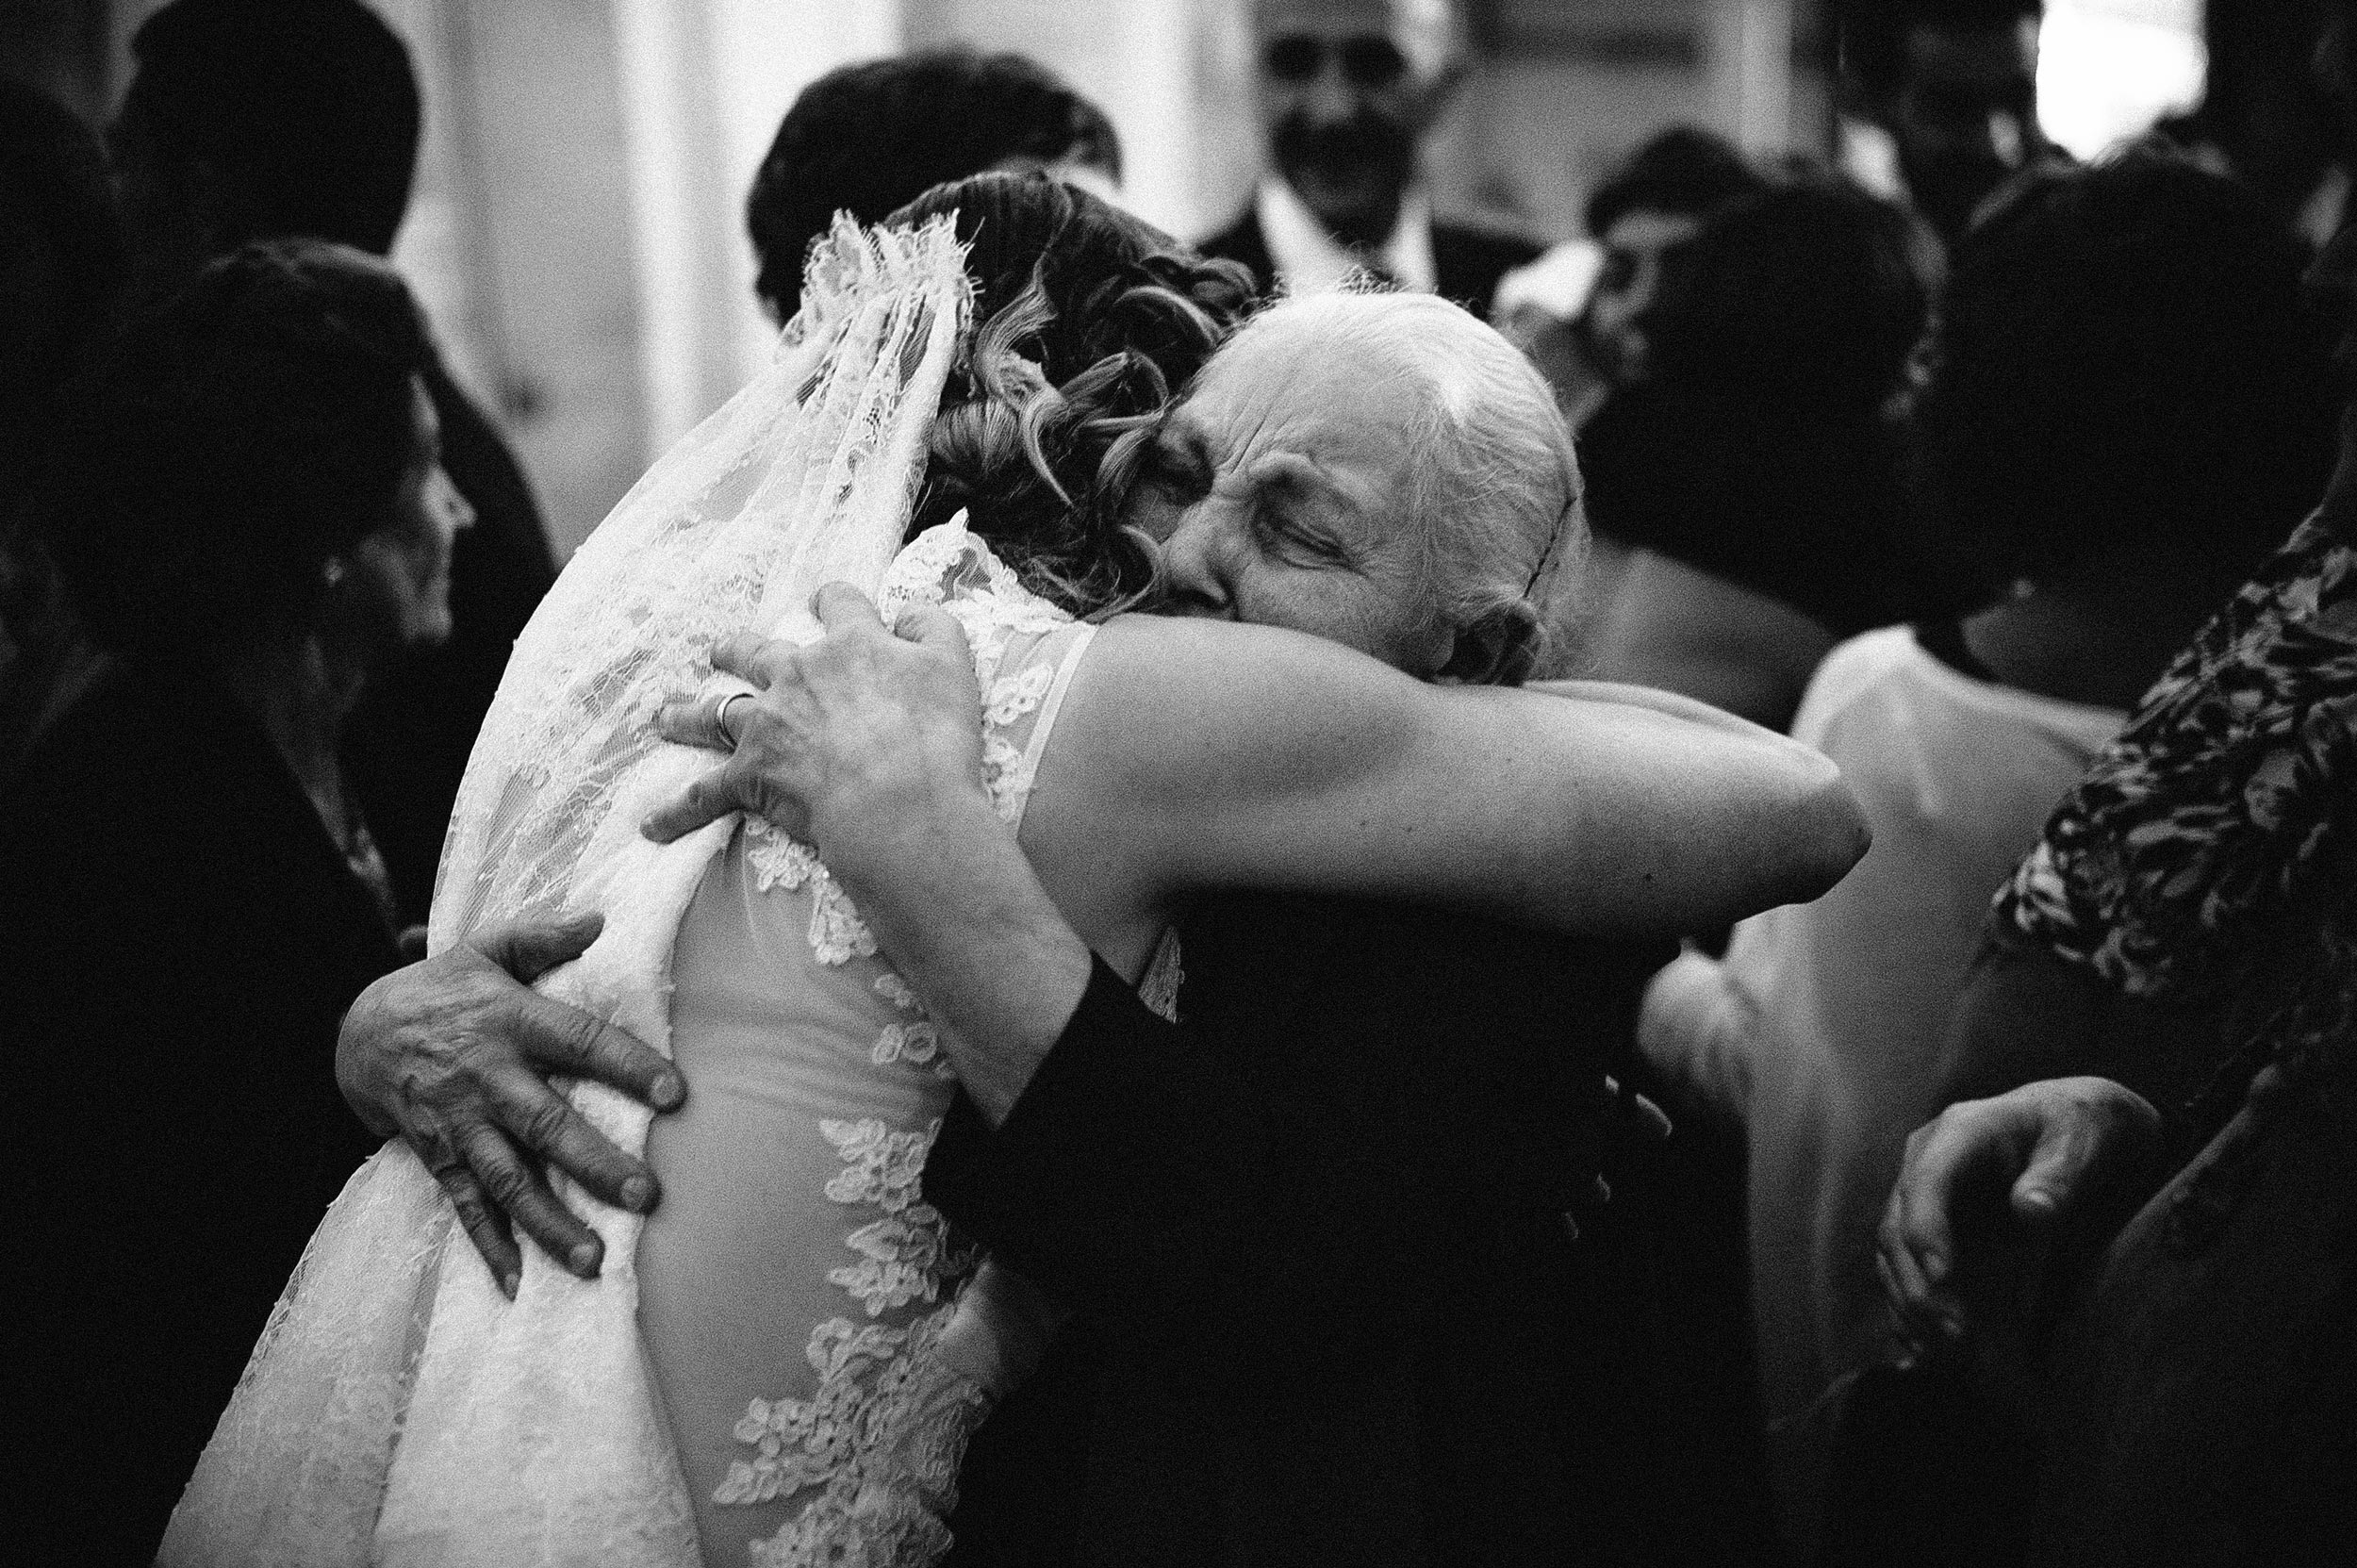 the-bride-hugs-her-grandmother-after-the-reception-italy-black-and-white-wedding-photography.jpg